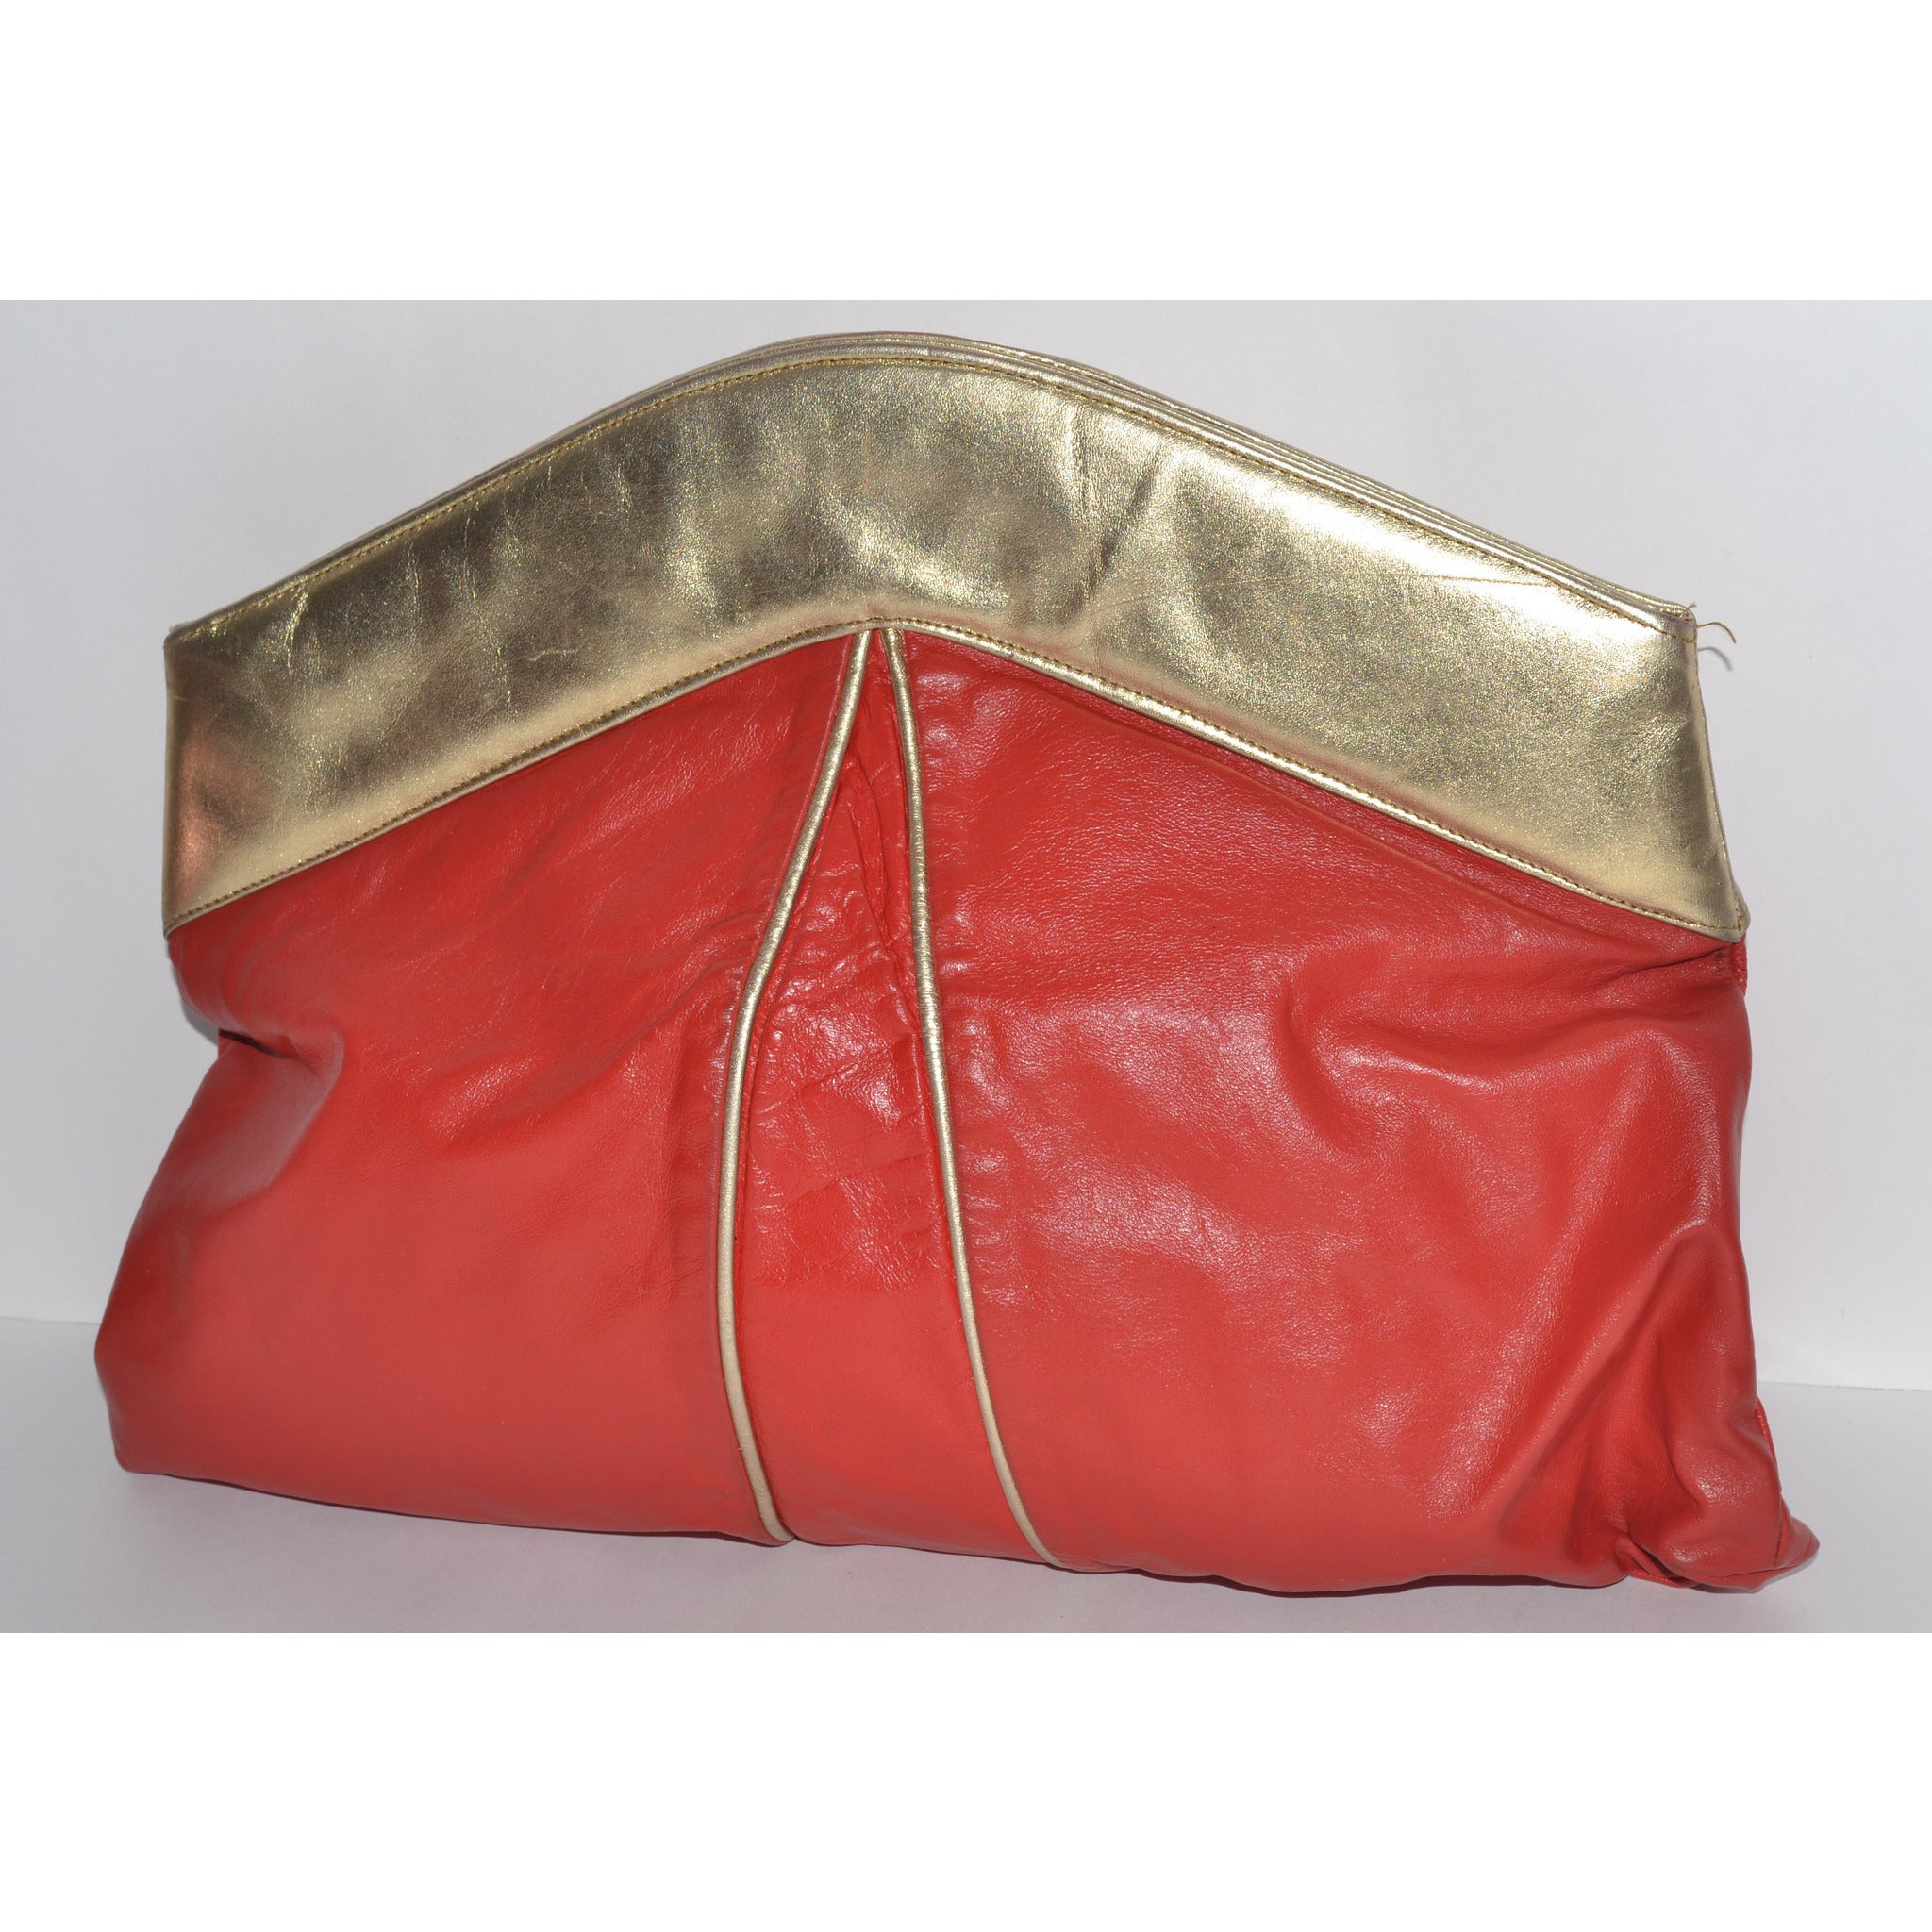 Vintage Oversized Red & Gold Clutch Purse